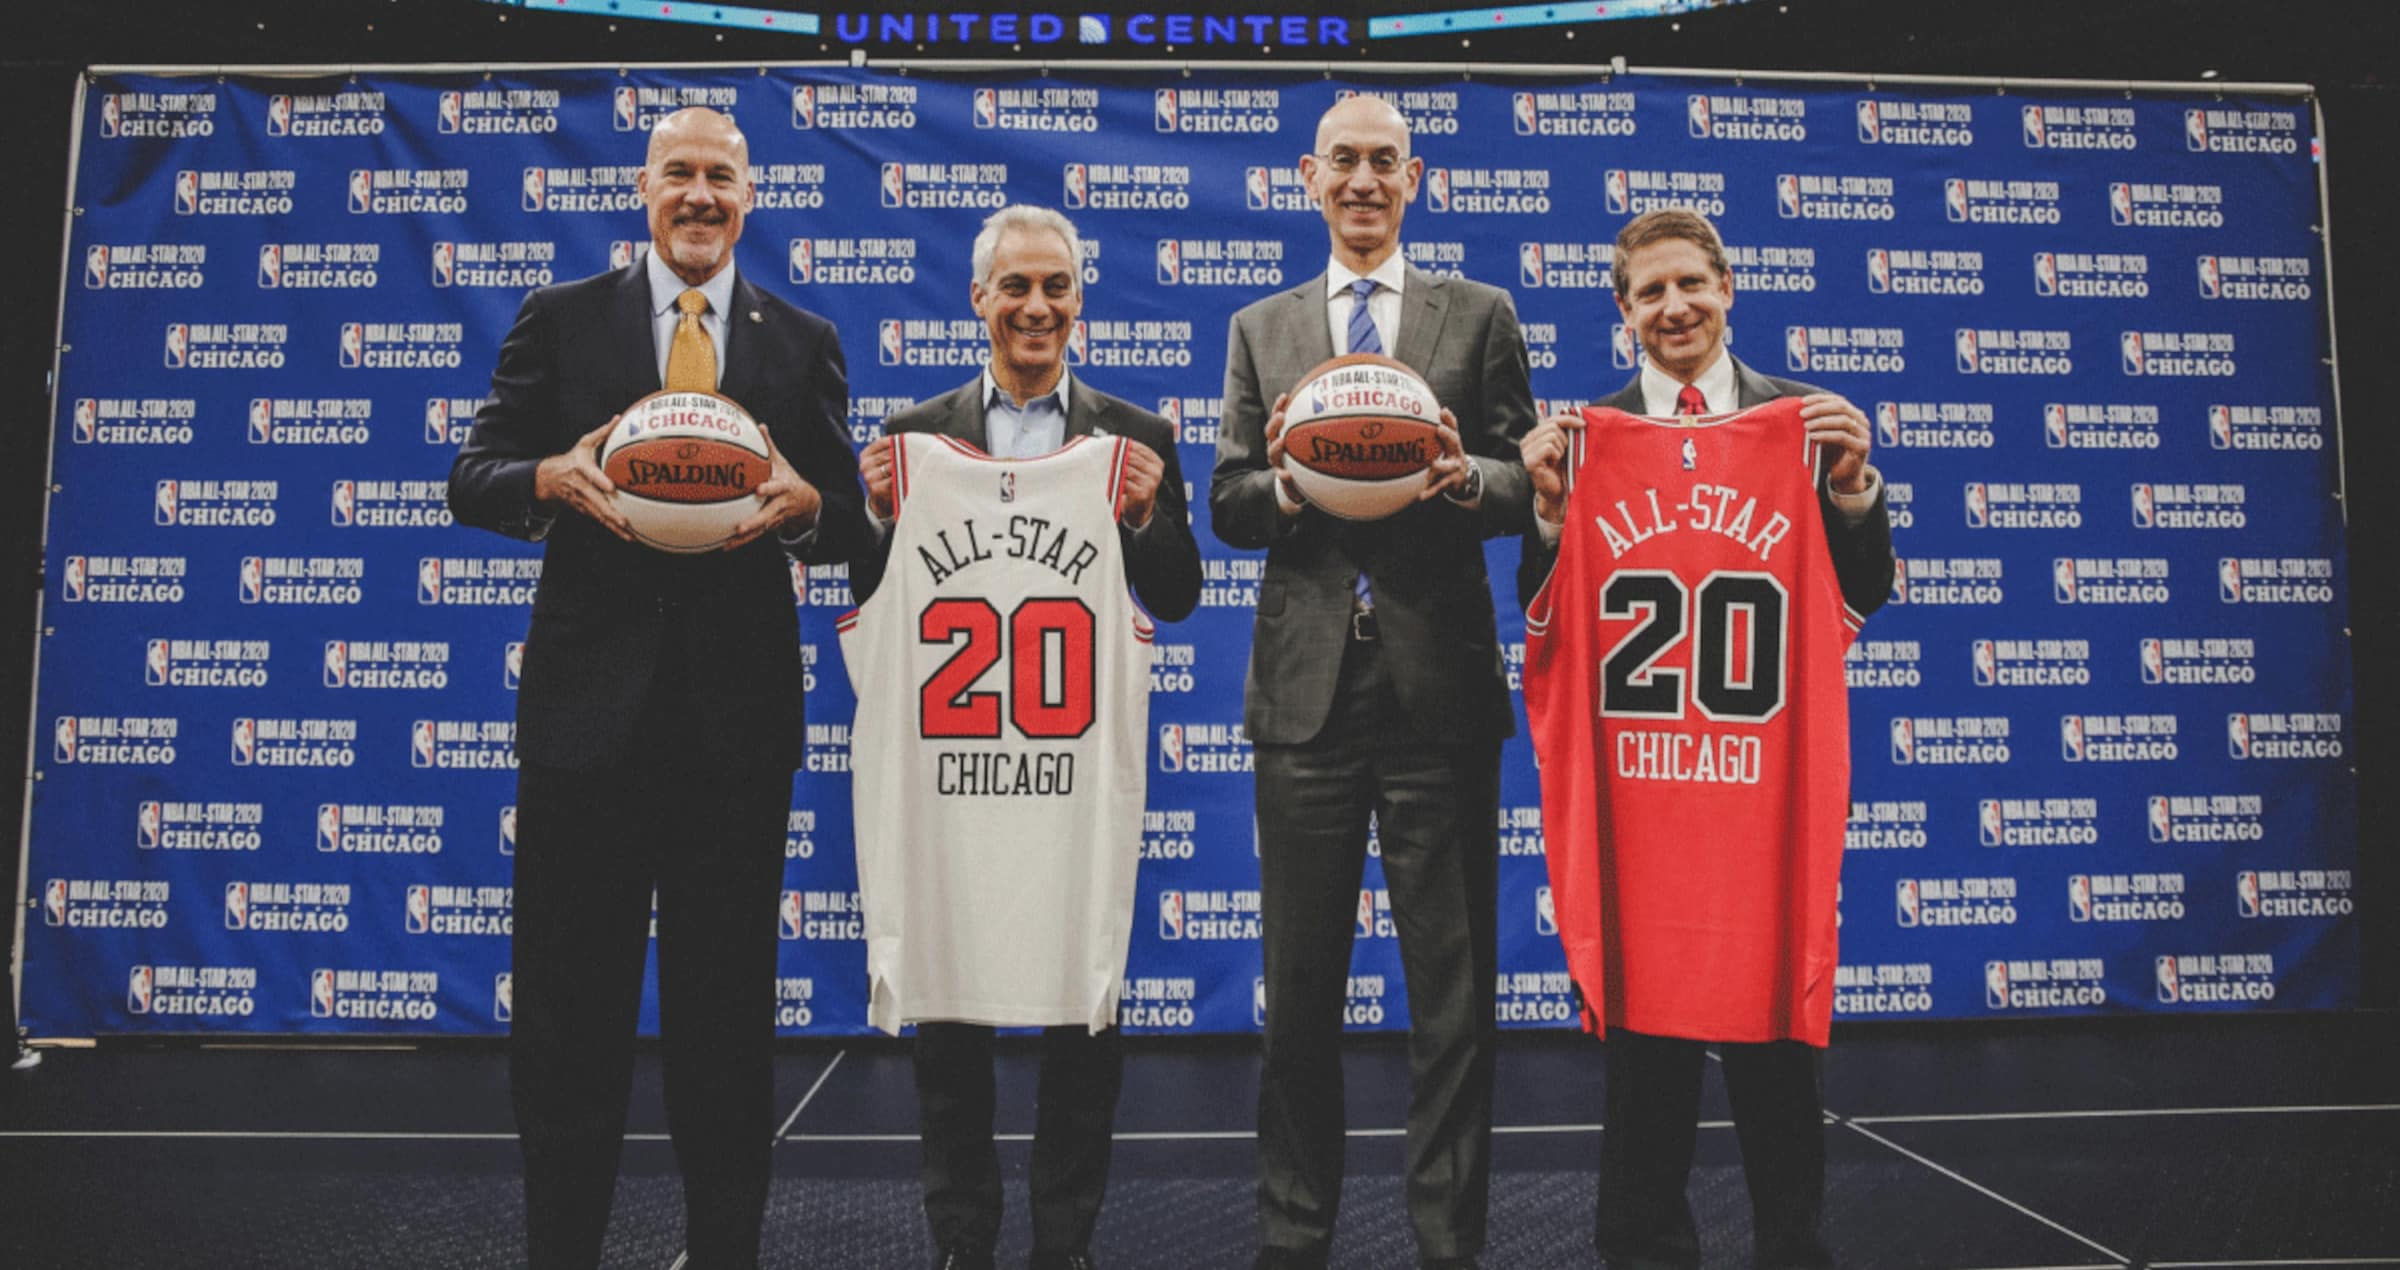 Nba Games 2020.The All Star Games Come To Chicago Chicago Bulls